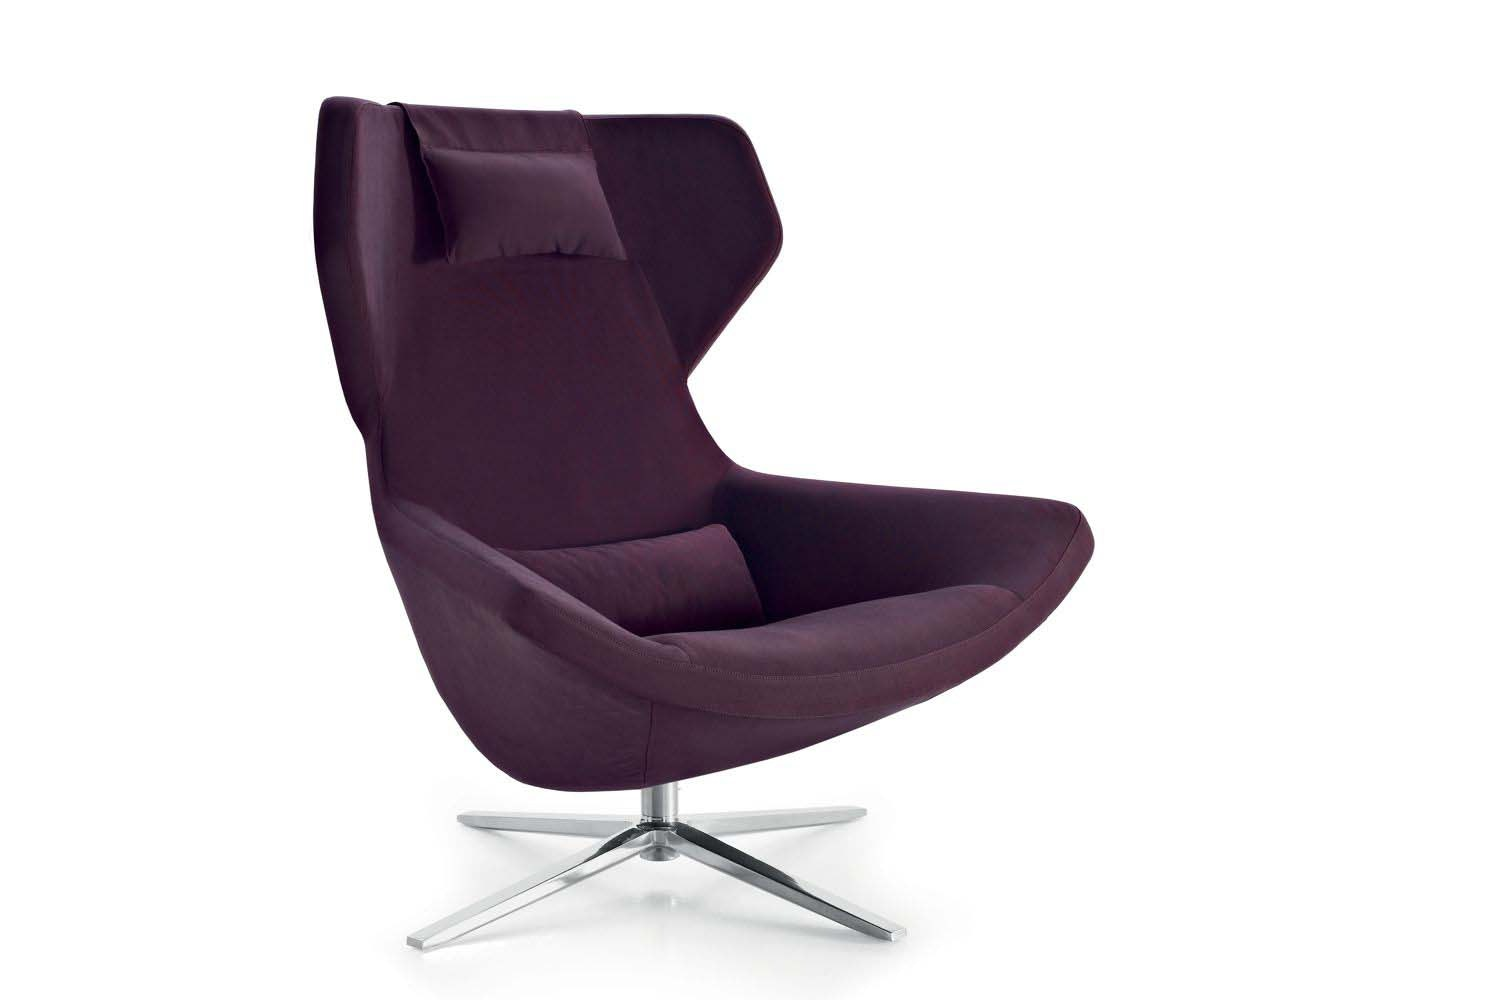 Metropolitan '14 Swivel Armchair by Jeffrey Bernett for B&B Italia